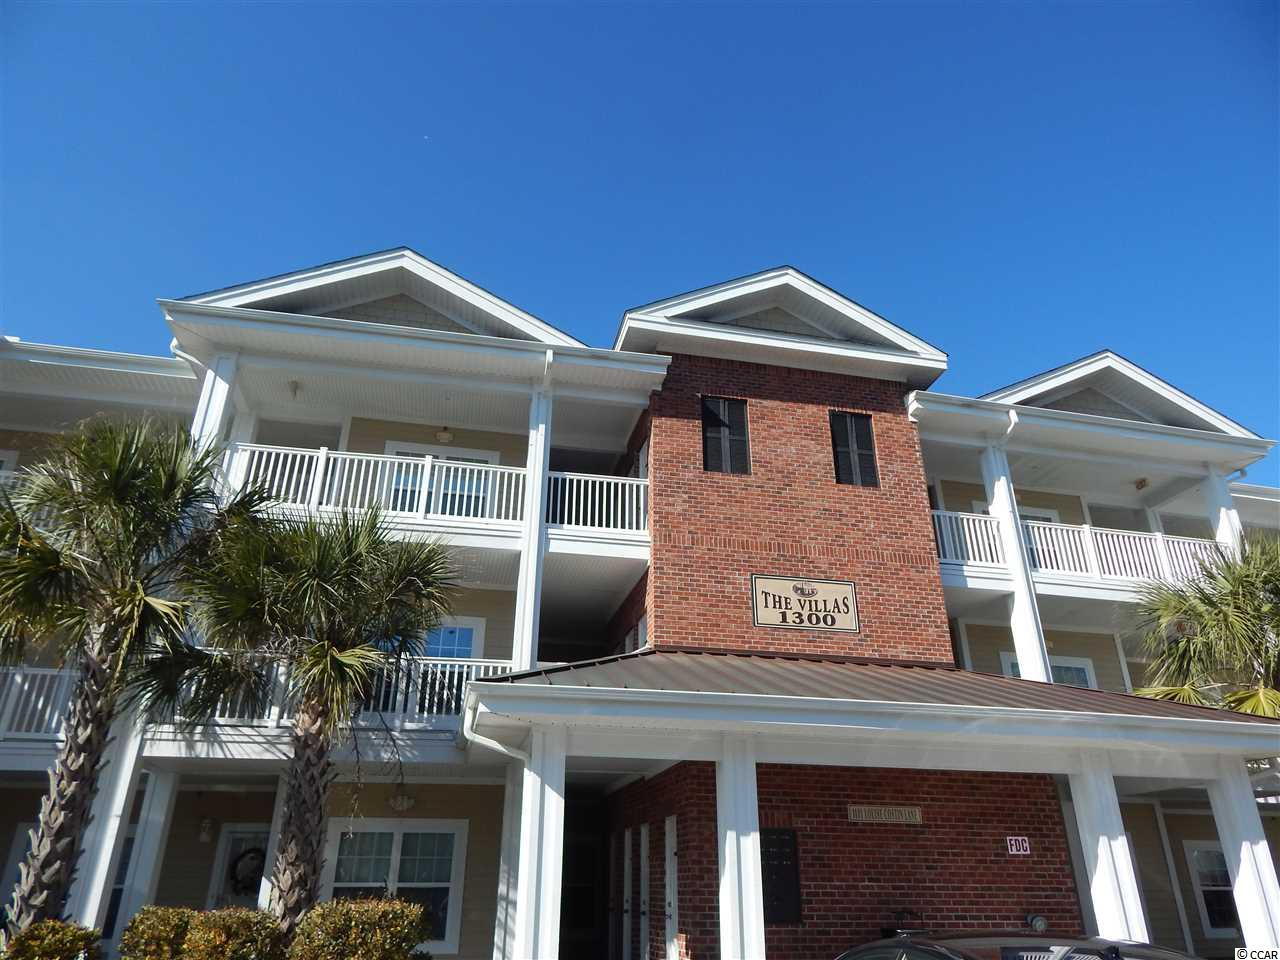 Tupelo Bay Garden City Condos for Sale in Myrtle Beach South